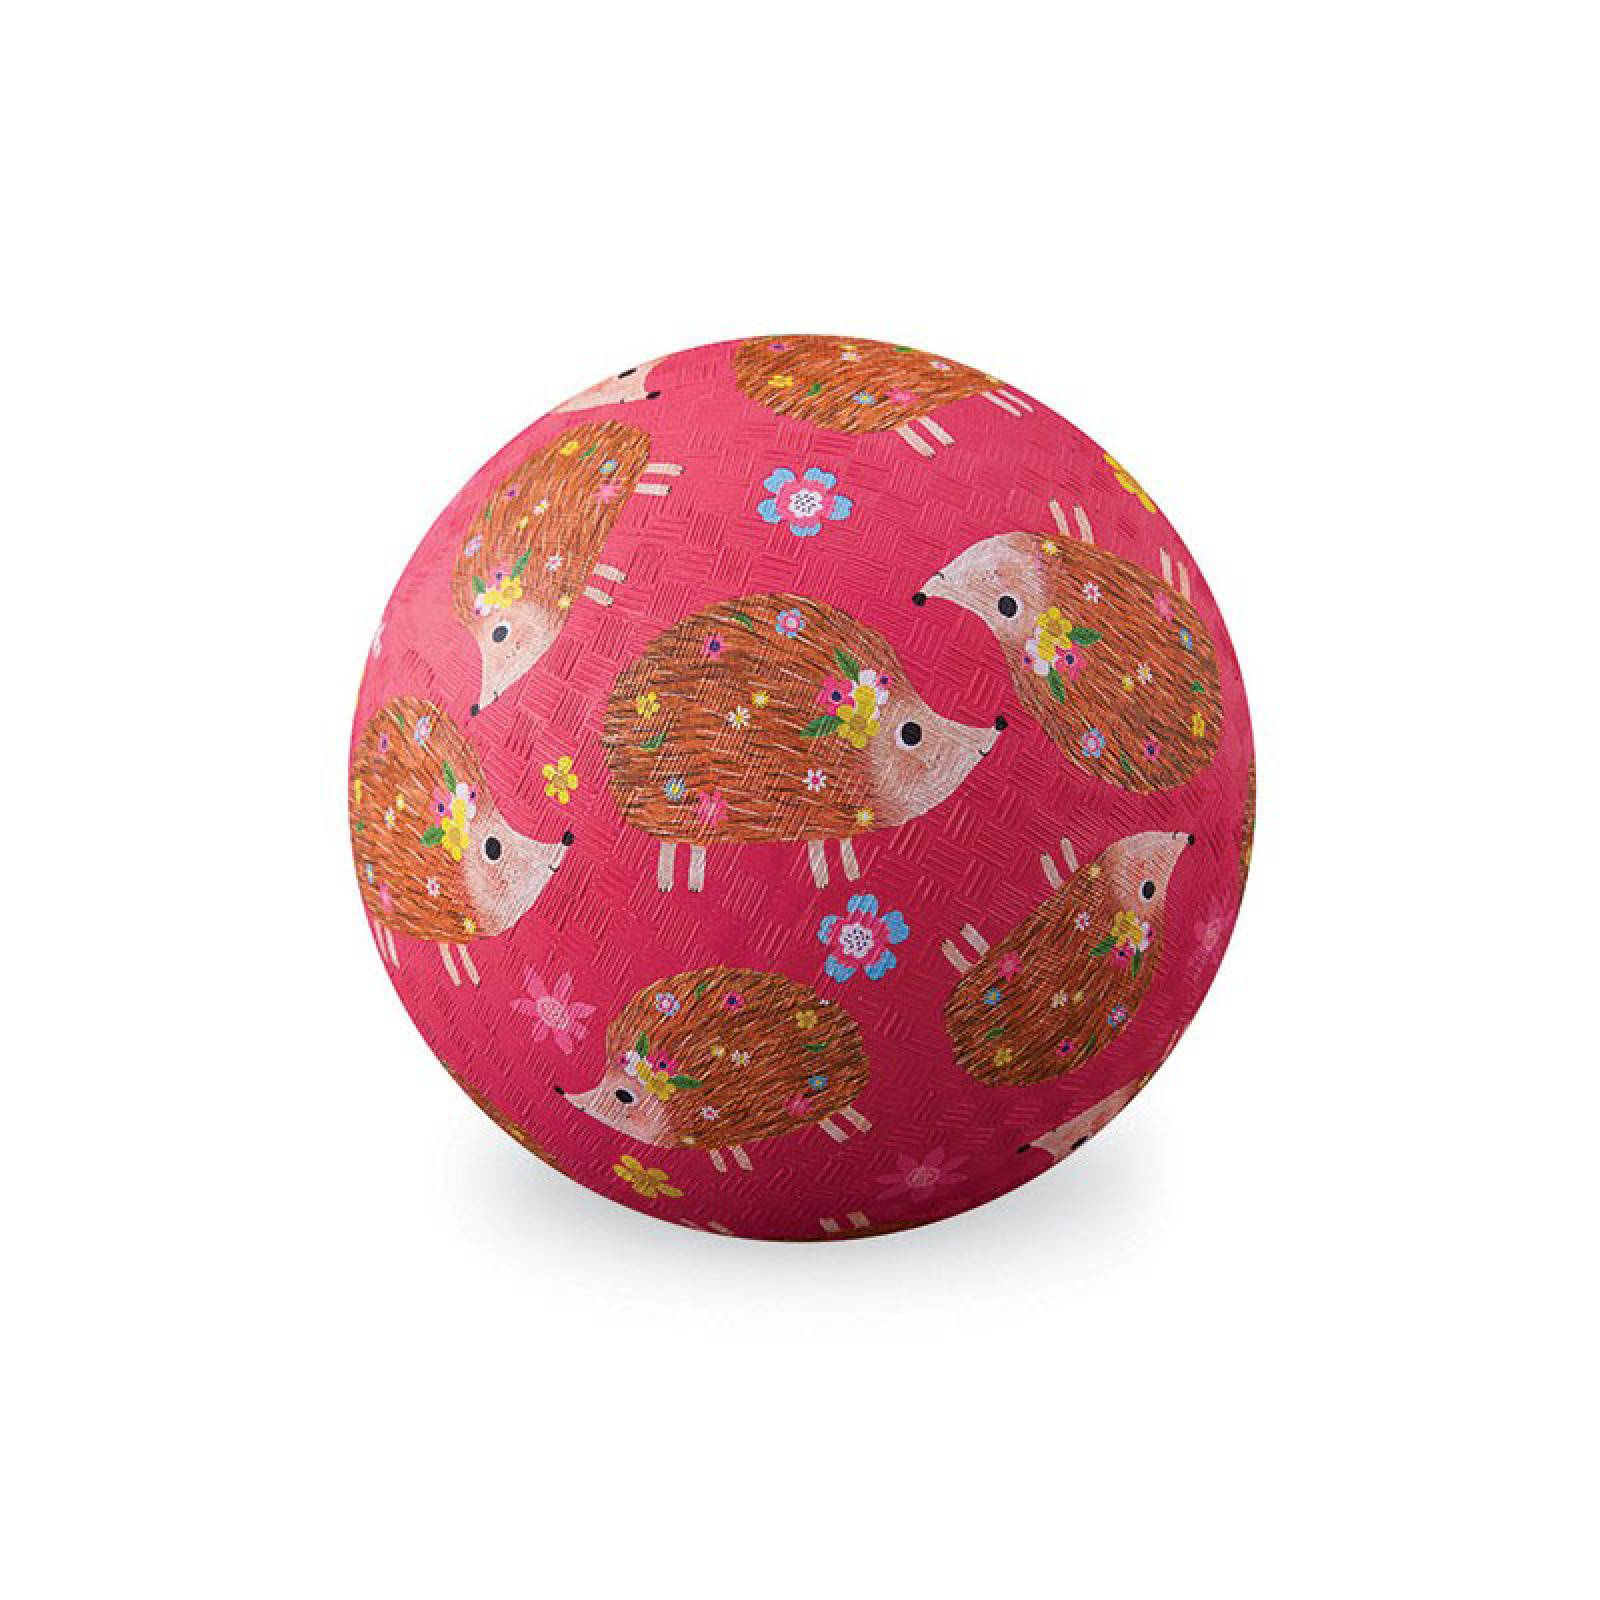 Hedgehog - Large Rubber Picture Ball 18cm